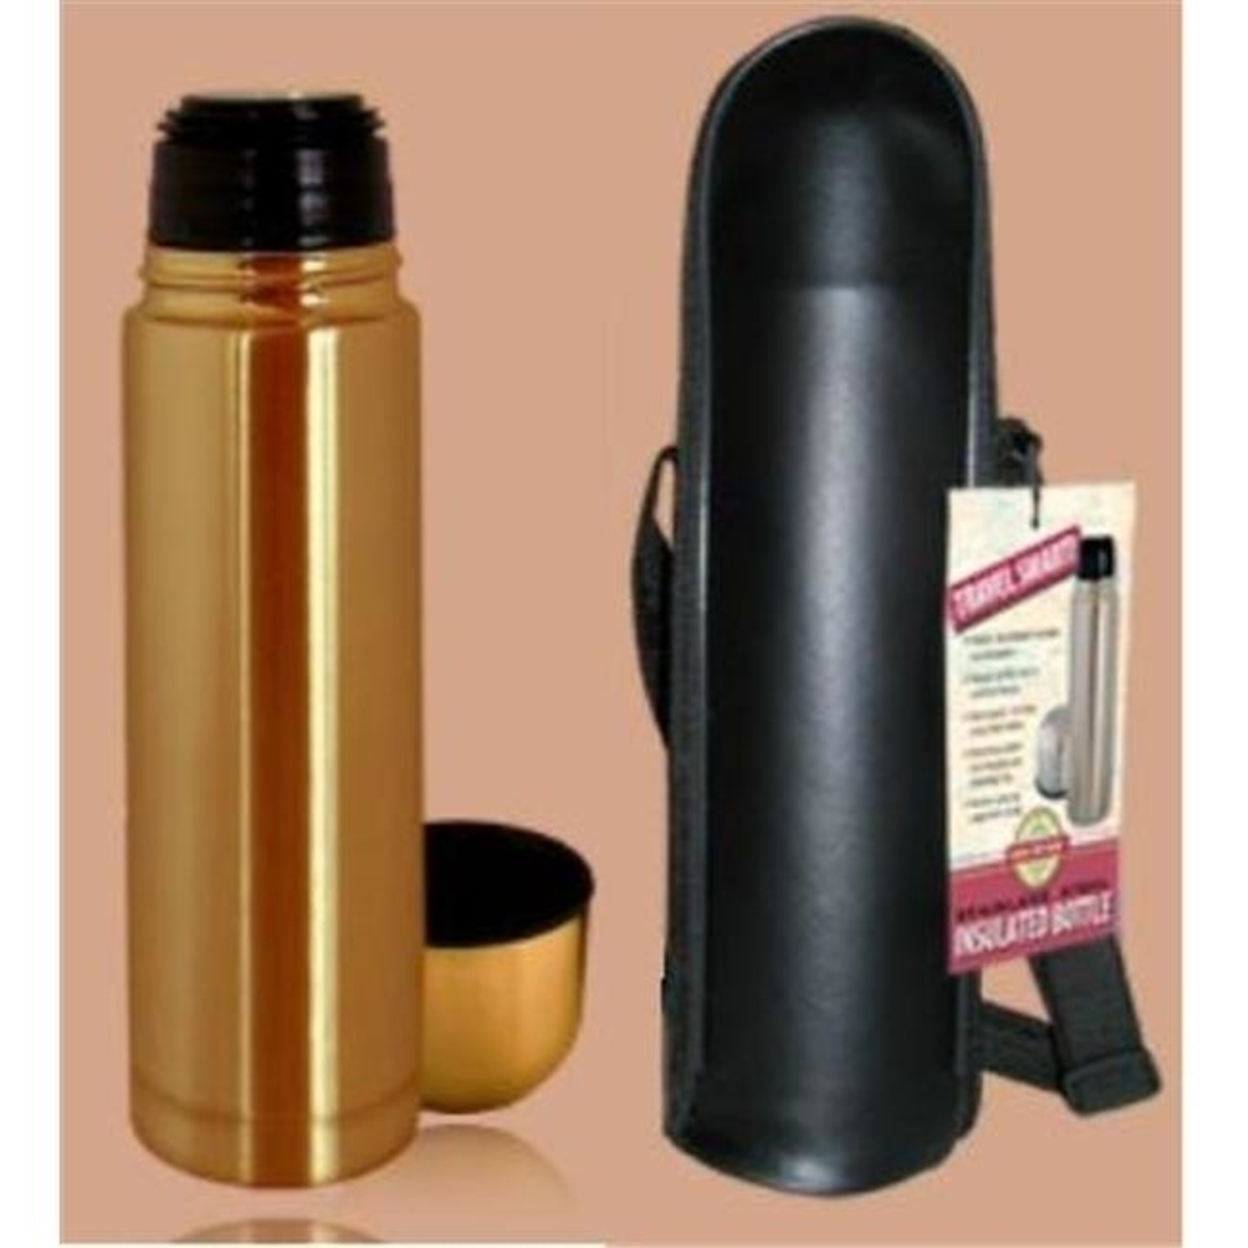 Good Life Gear Sf1005 BRZ 16 oz. Thermal Hot-Cold Bottle With Black Carrying Case - Bronze 59f0e6ea2a00e41fea7f6c08